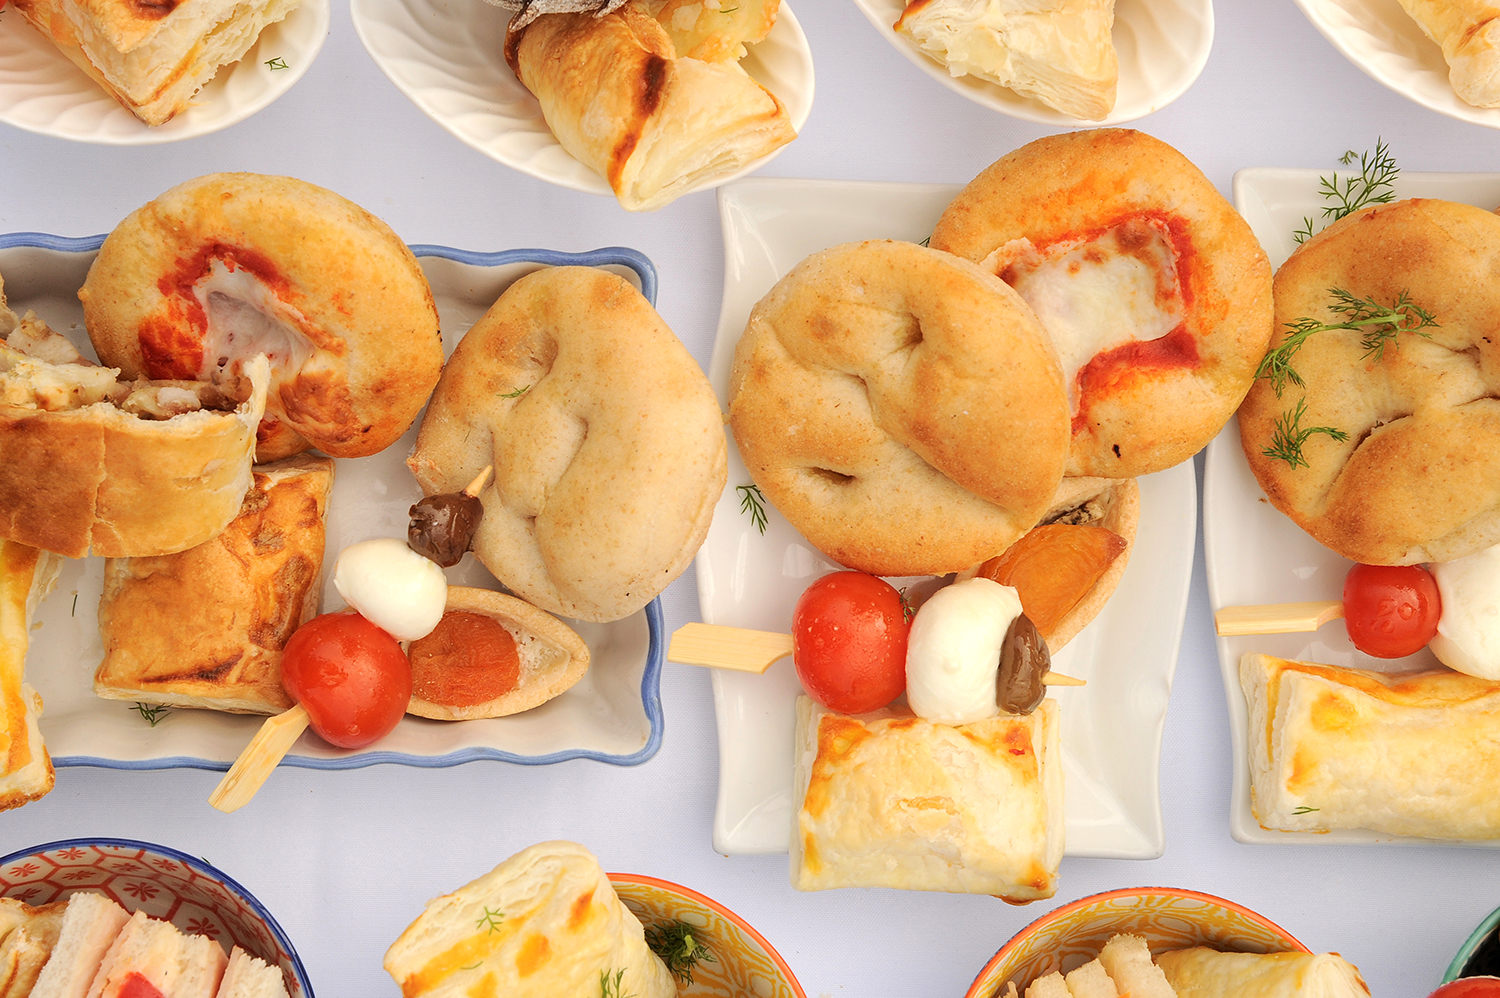 Milan Italy 04/13/2019 ,Catering : buffet of Italian pretzels  , small pizzas with tomato and mozzarella, rustic with wurstel, pizzette puff pastry, traditional savory pastries